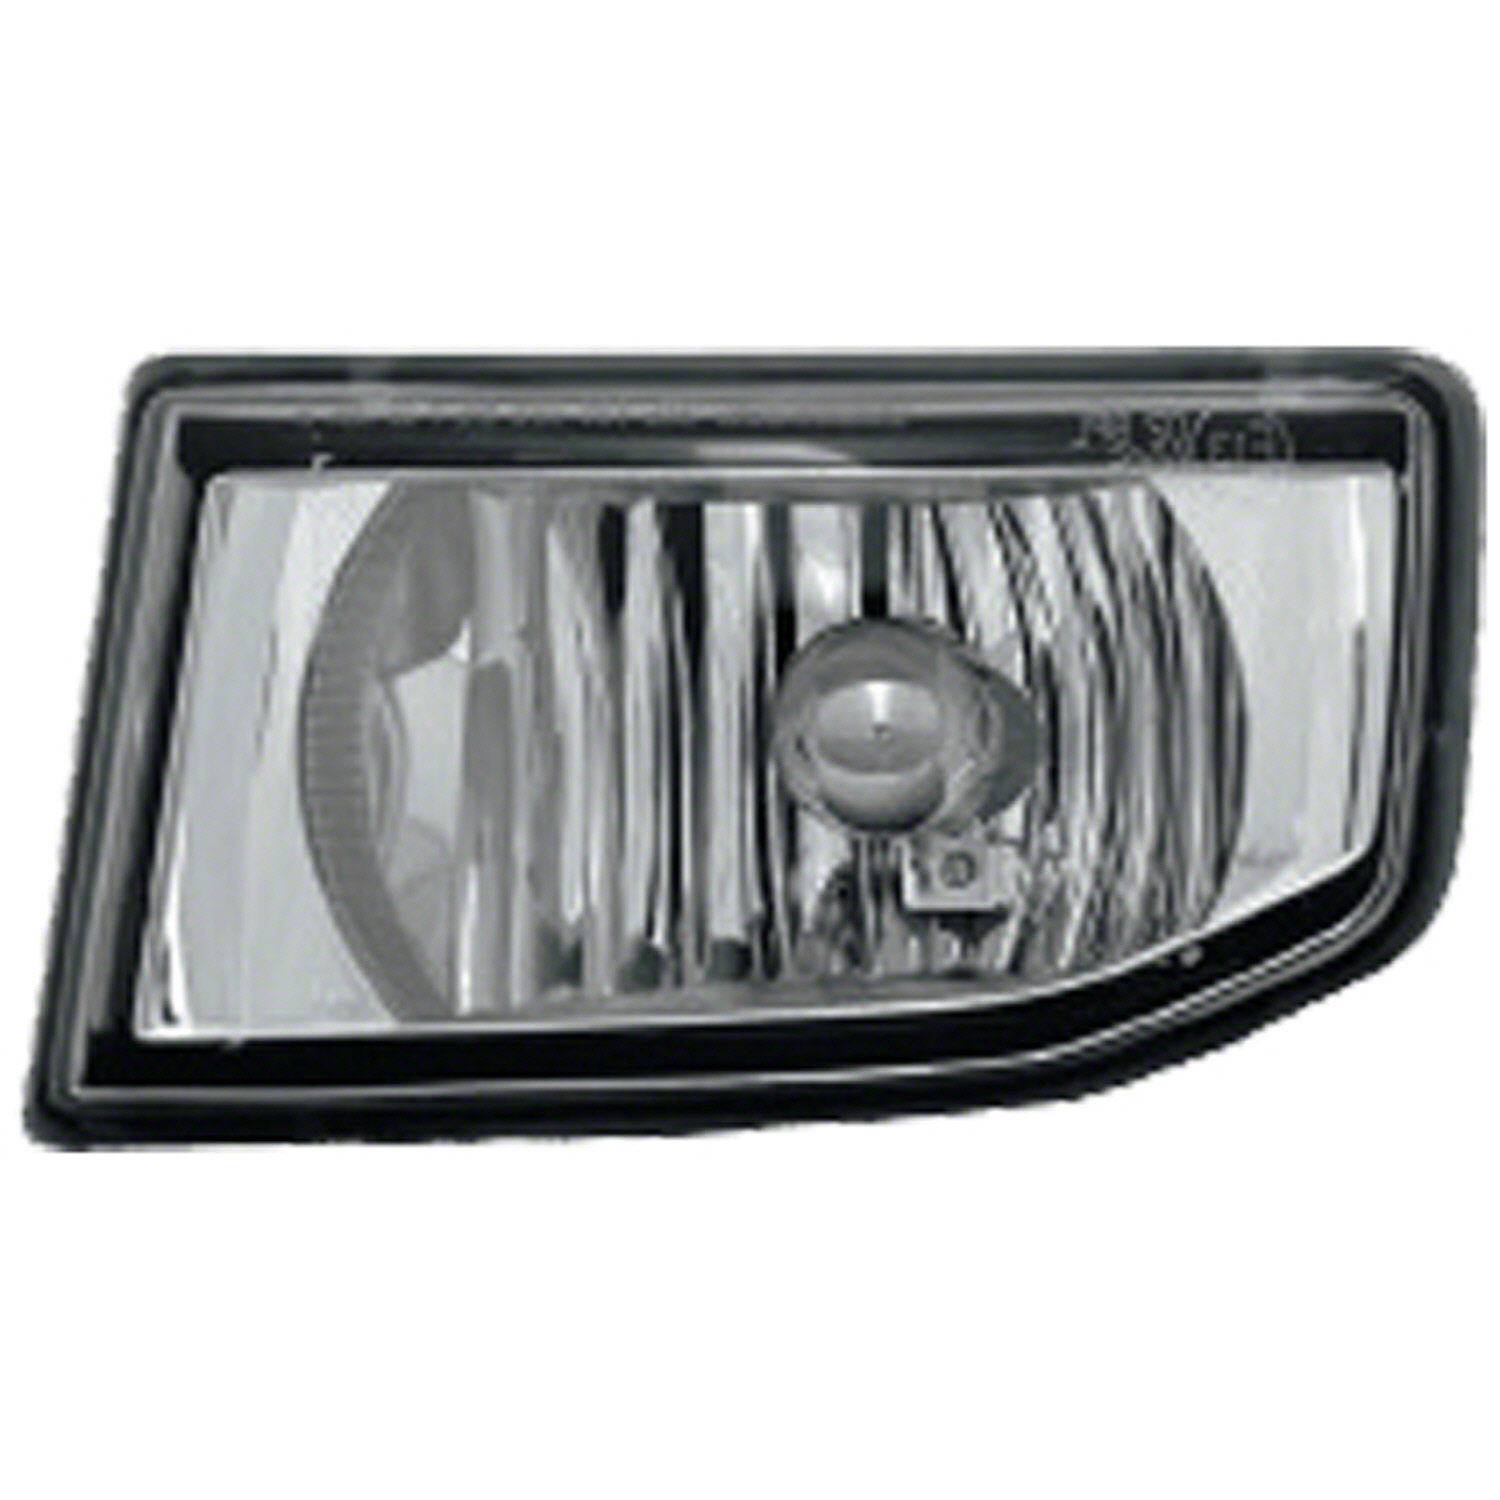 Aftermarket 2004-2006 Acura MDX Driver Side Left Fog Light